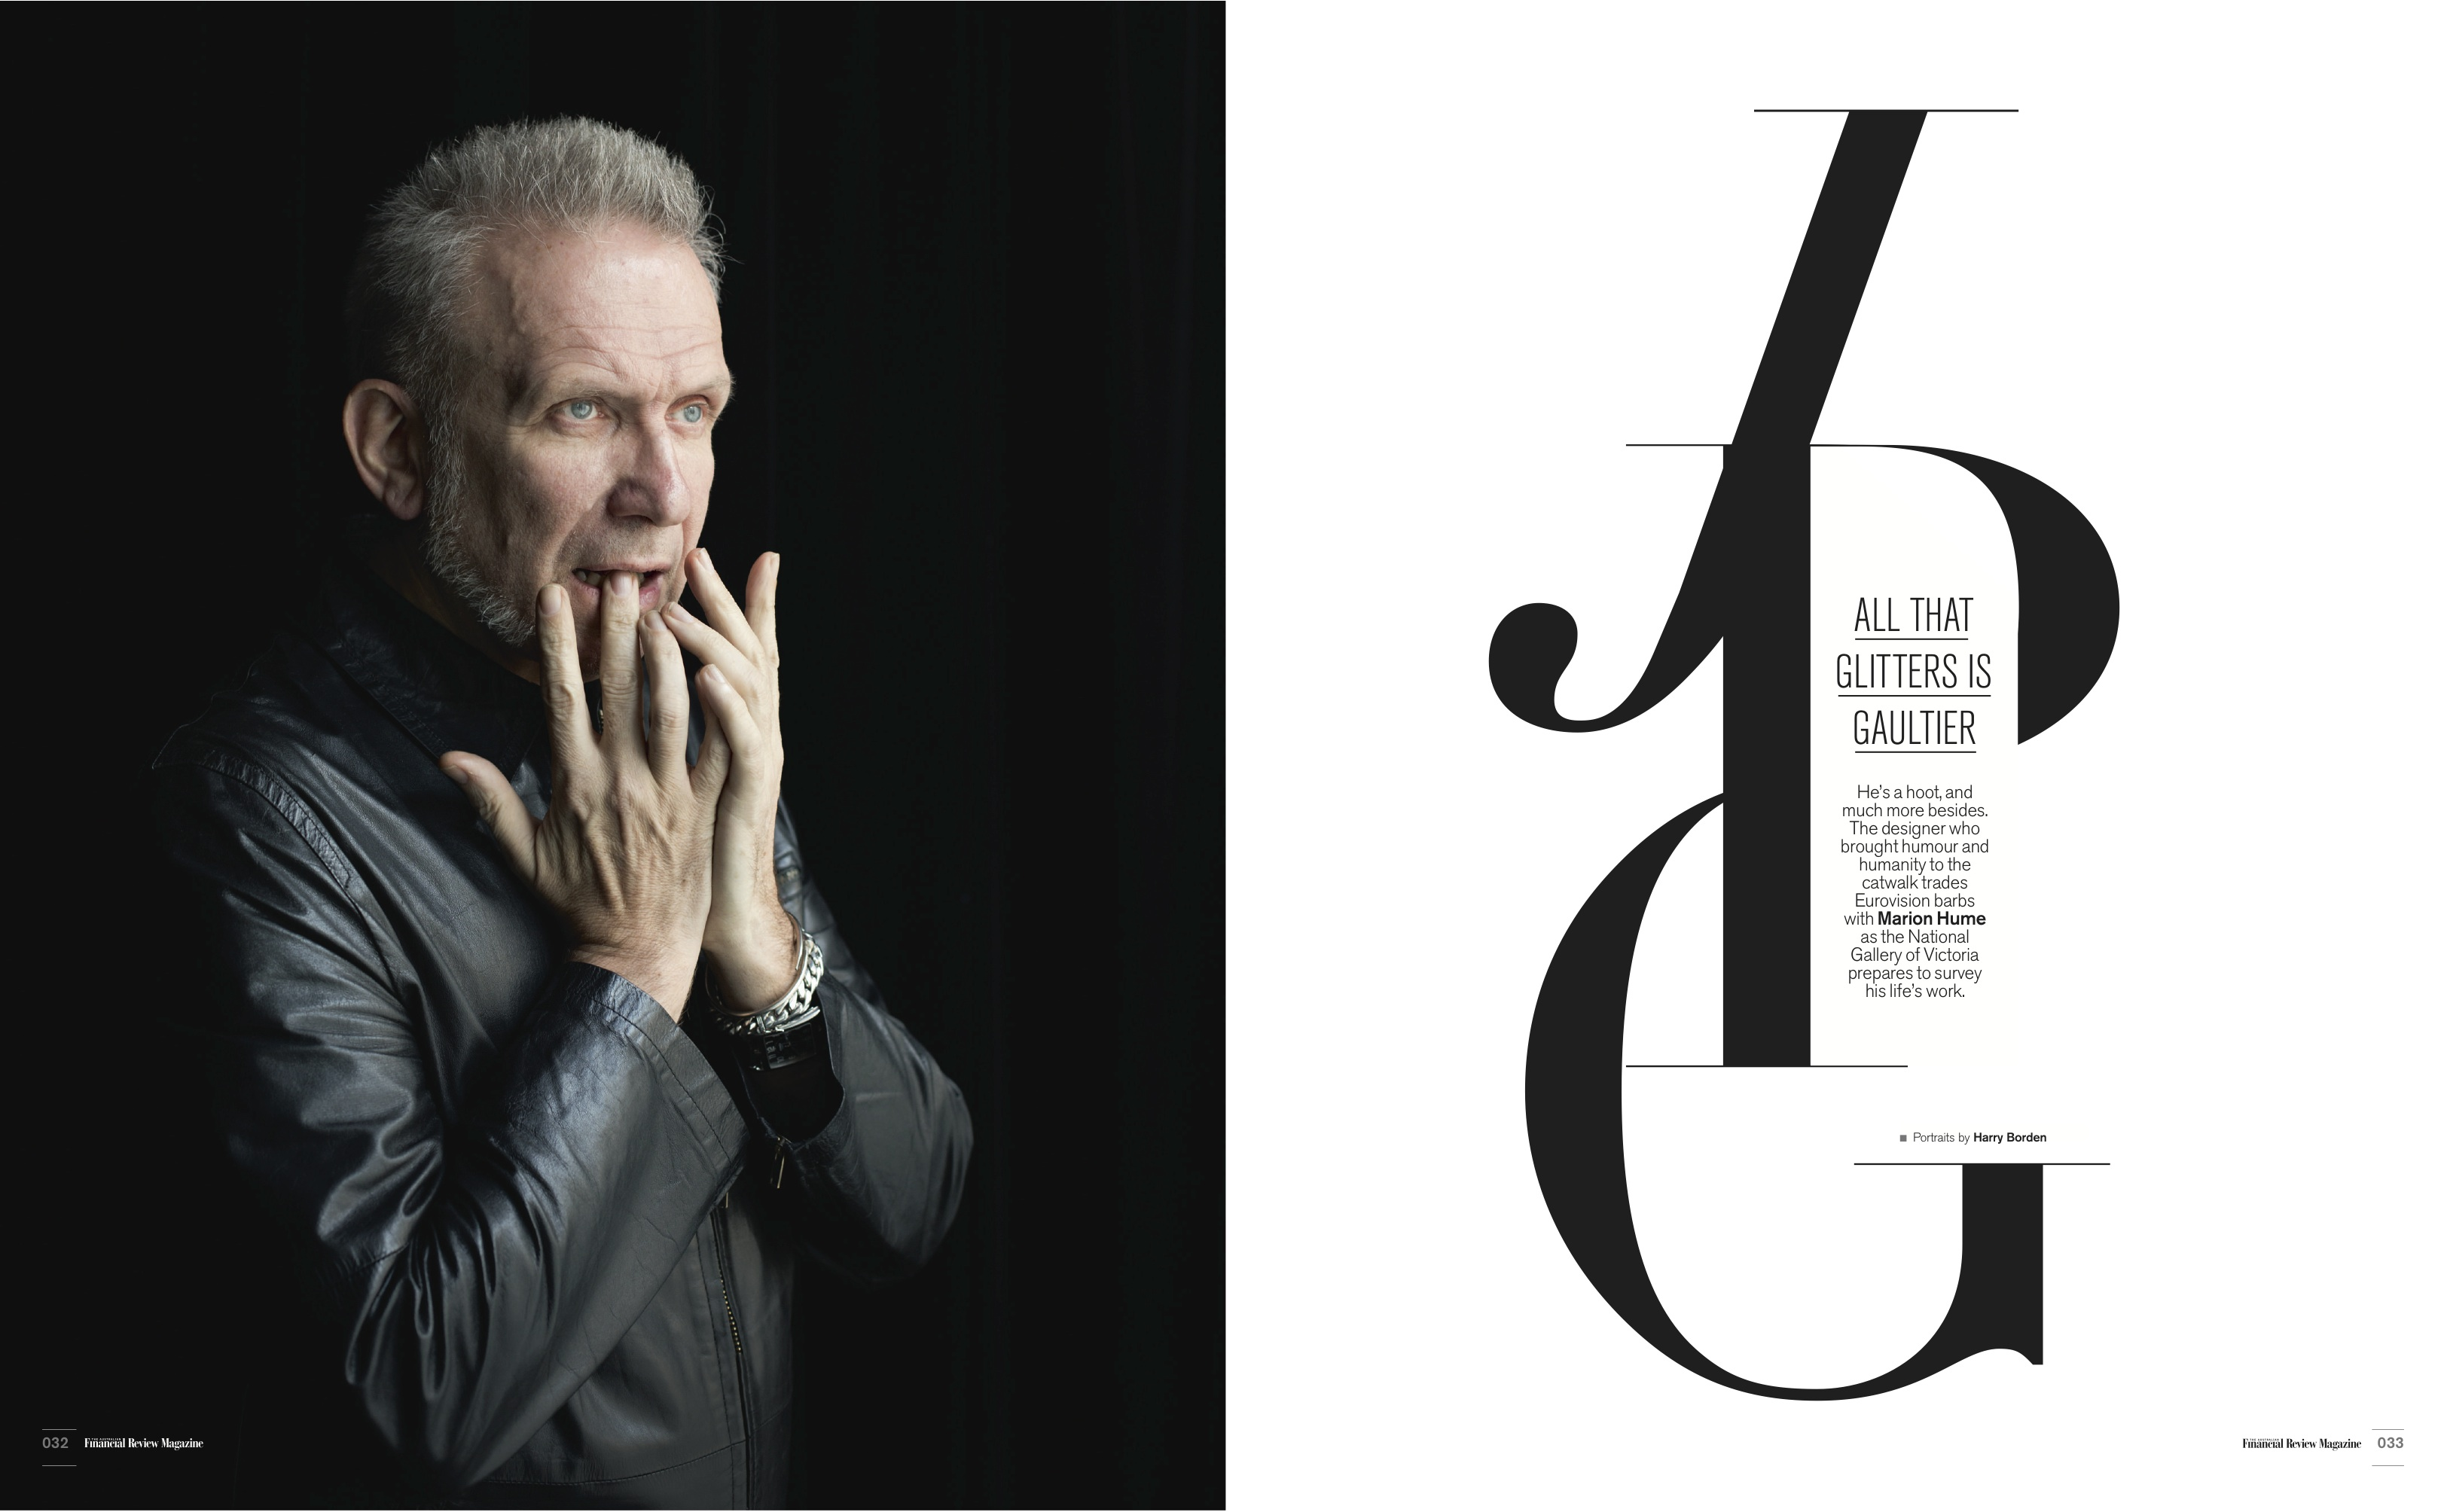 jean paul gaultier biography Mr jean paul gaultier is the co-founder of beauté prestige international sa in 1990 he served as artistic director of hermes international sa since 2003.